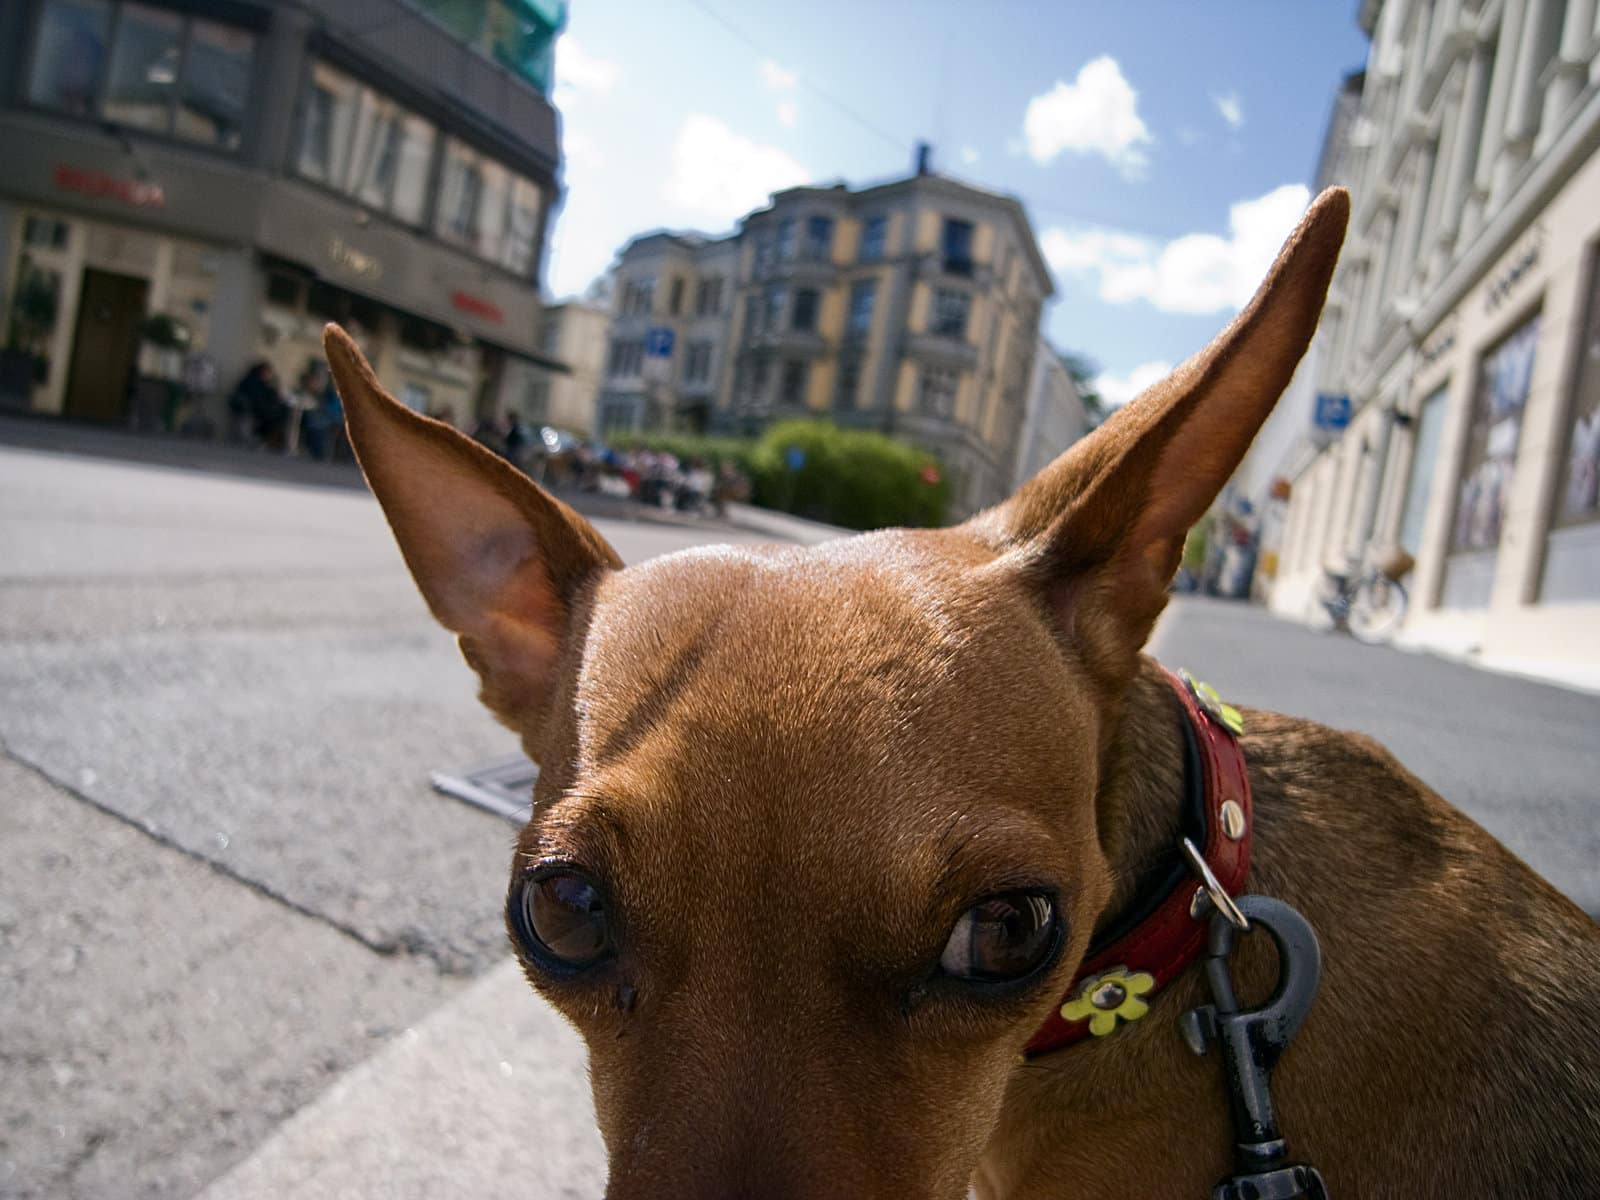 Short hair brown dog pointy ears and red collar with daisies standing in empty street in town.